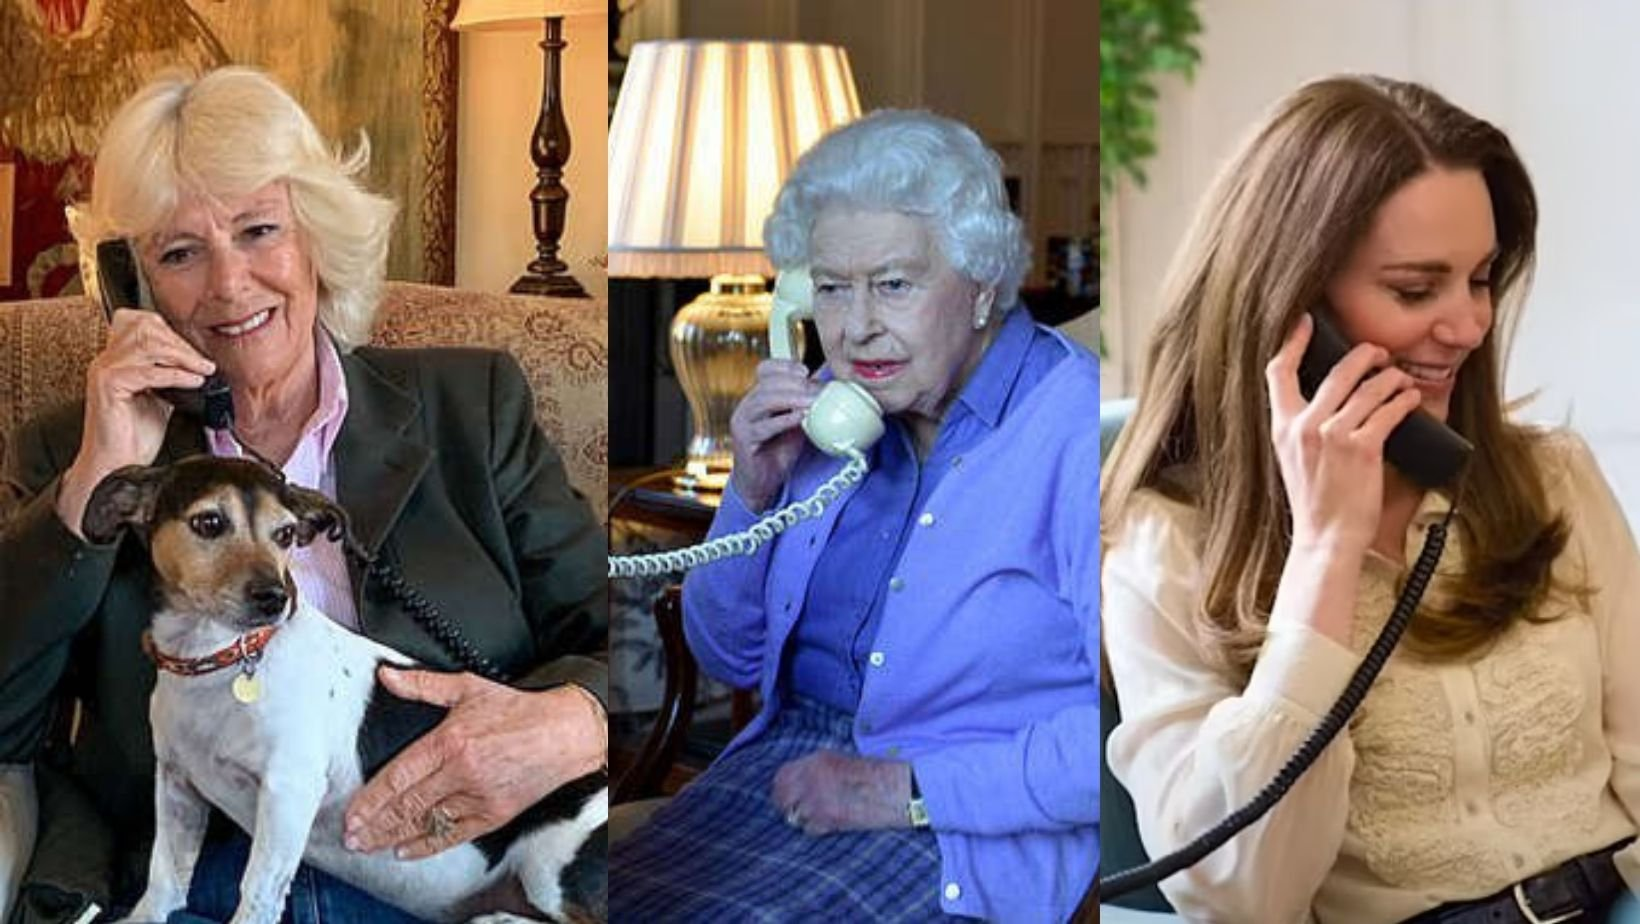 1 82.jpg?resize=1200,630 - The Reason Why The Royal Family Still Use Corded Landline Phones Will Make You Question Your Life Choices